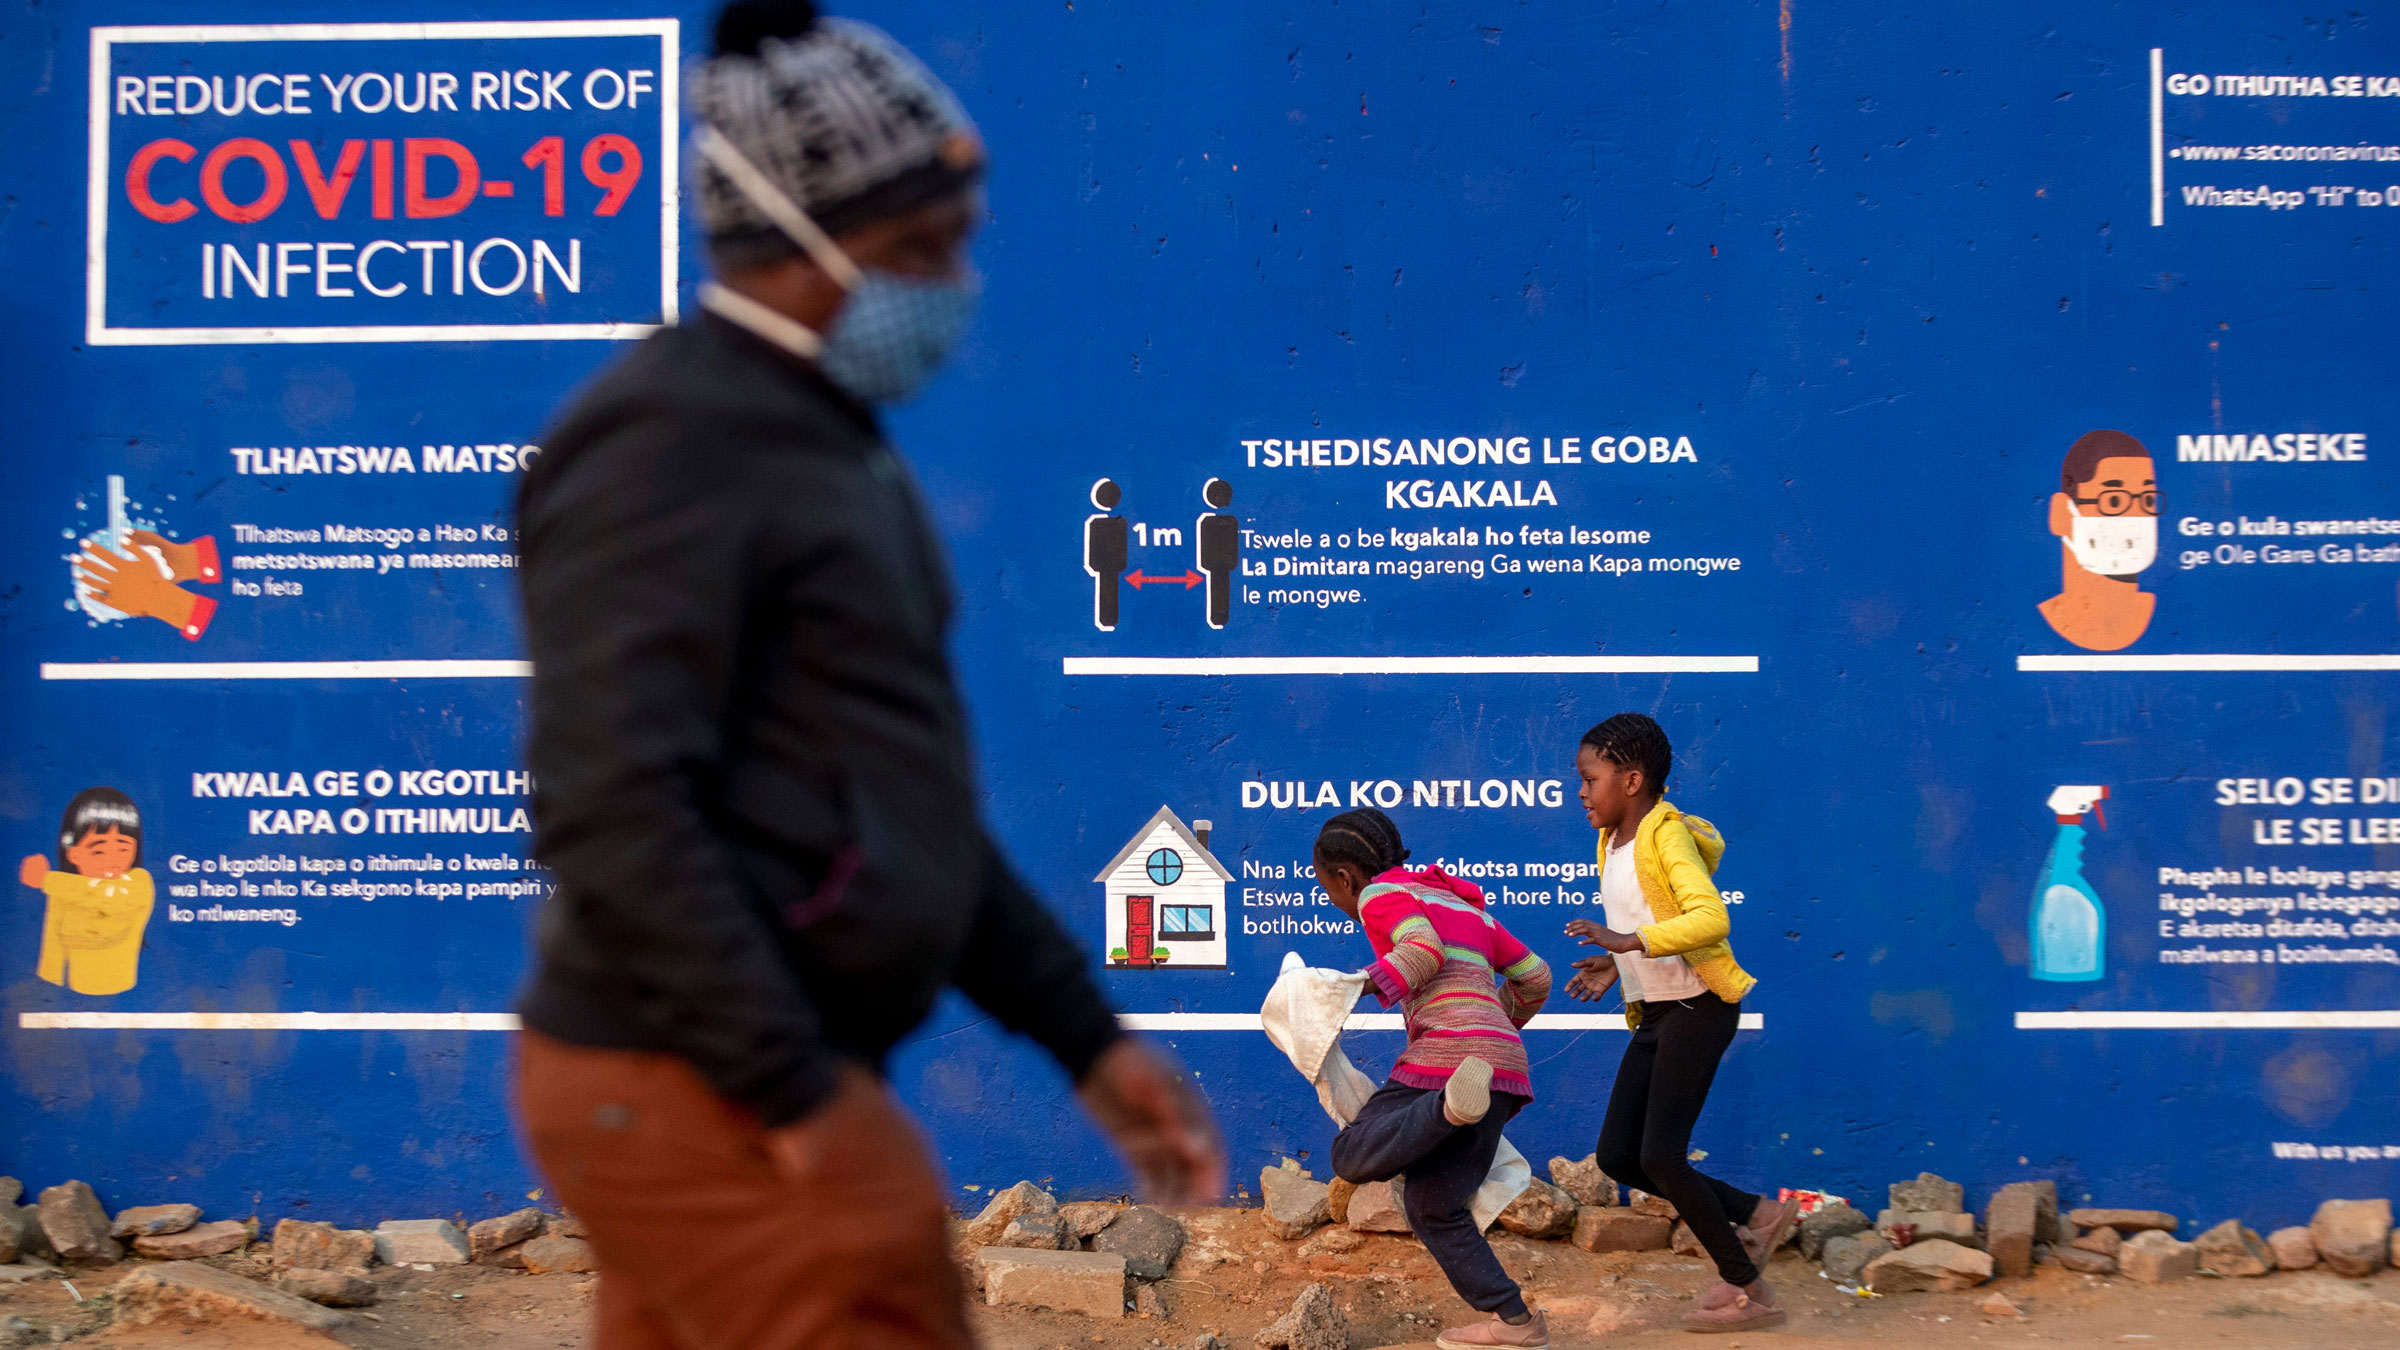 People walk past coronavirus guidance in Soweto, South Africa, on July 13.